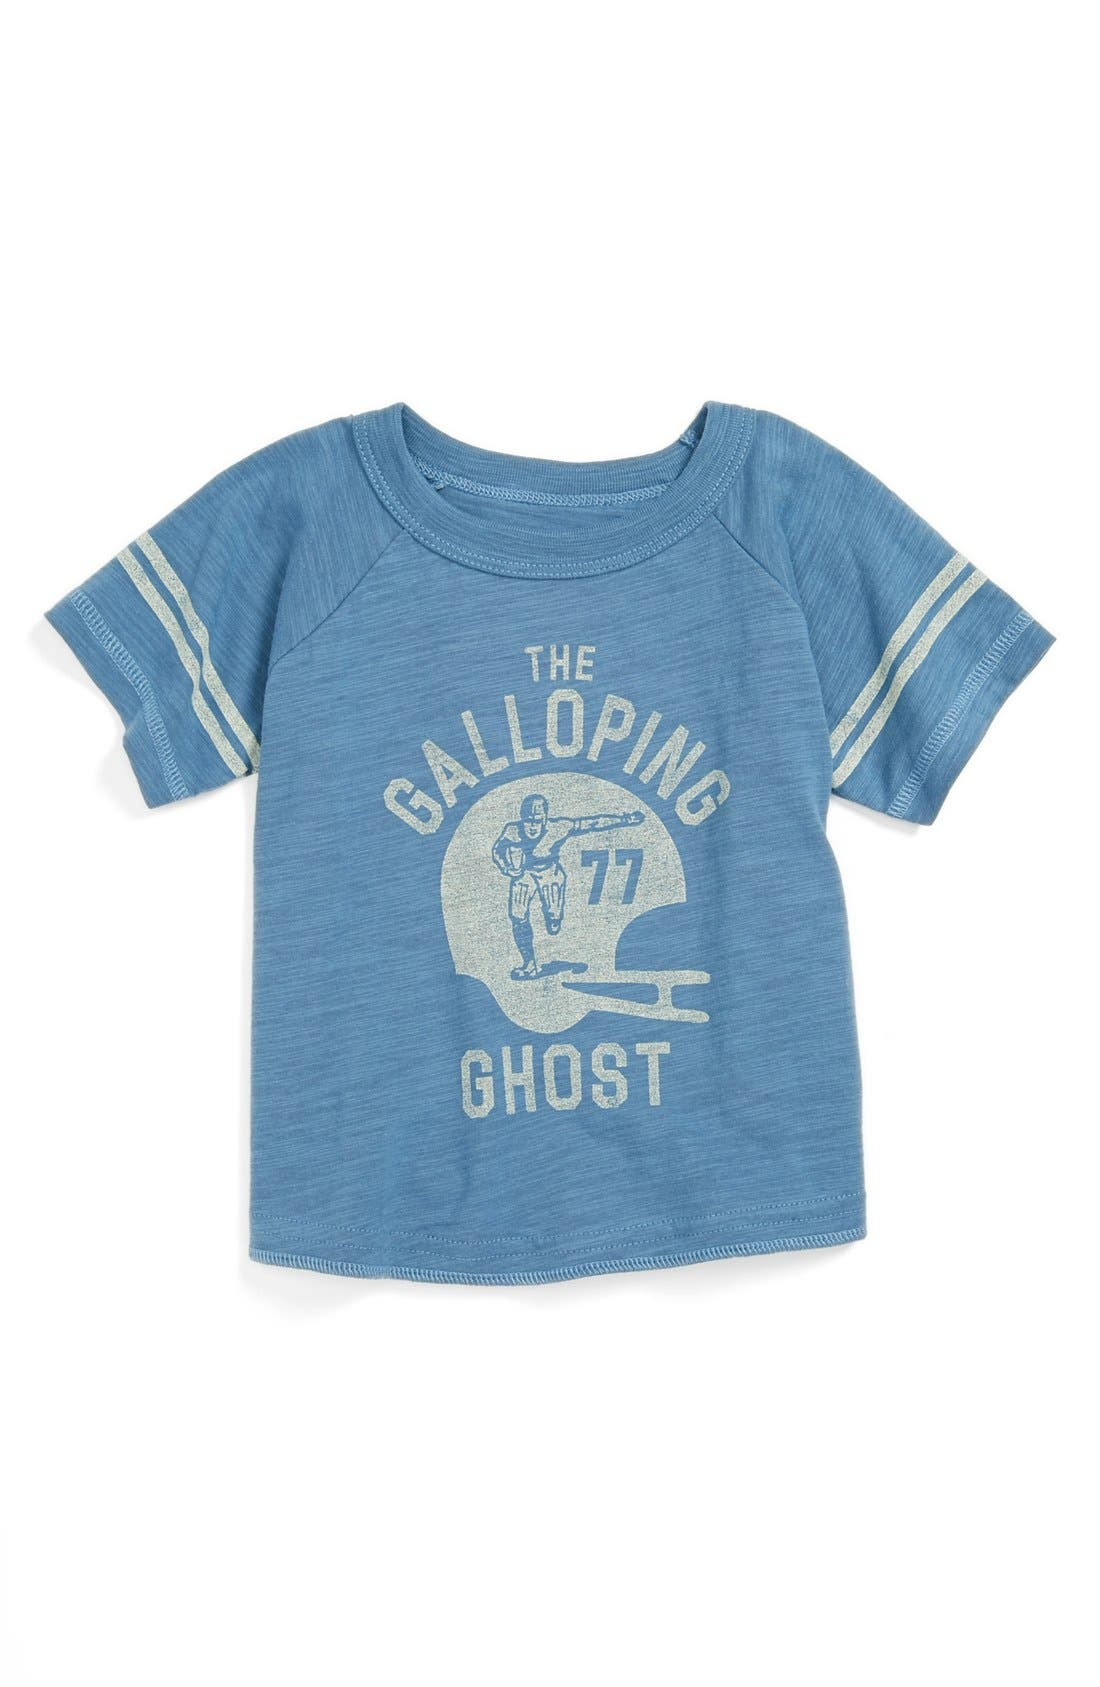 Alternate Image 1 Selected - Peek 'Galloping Ghost' T-Shirt (Baby Boys)